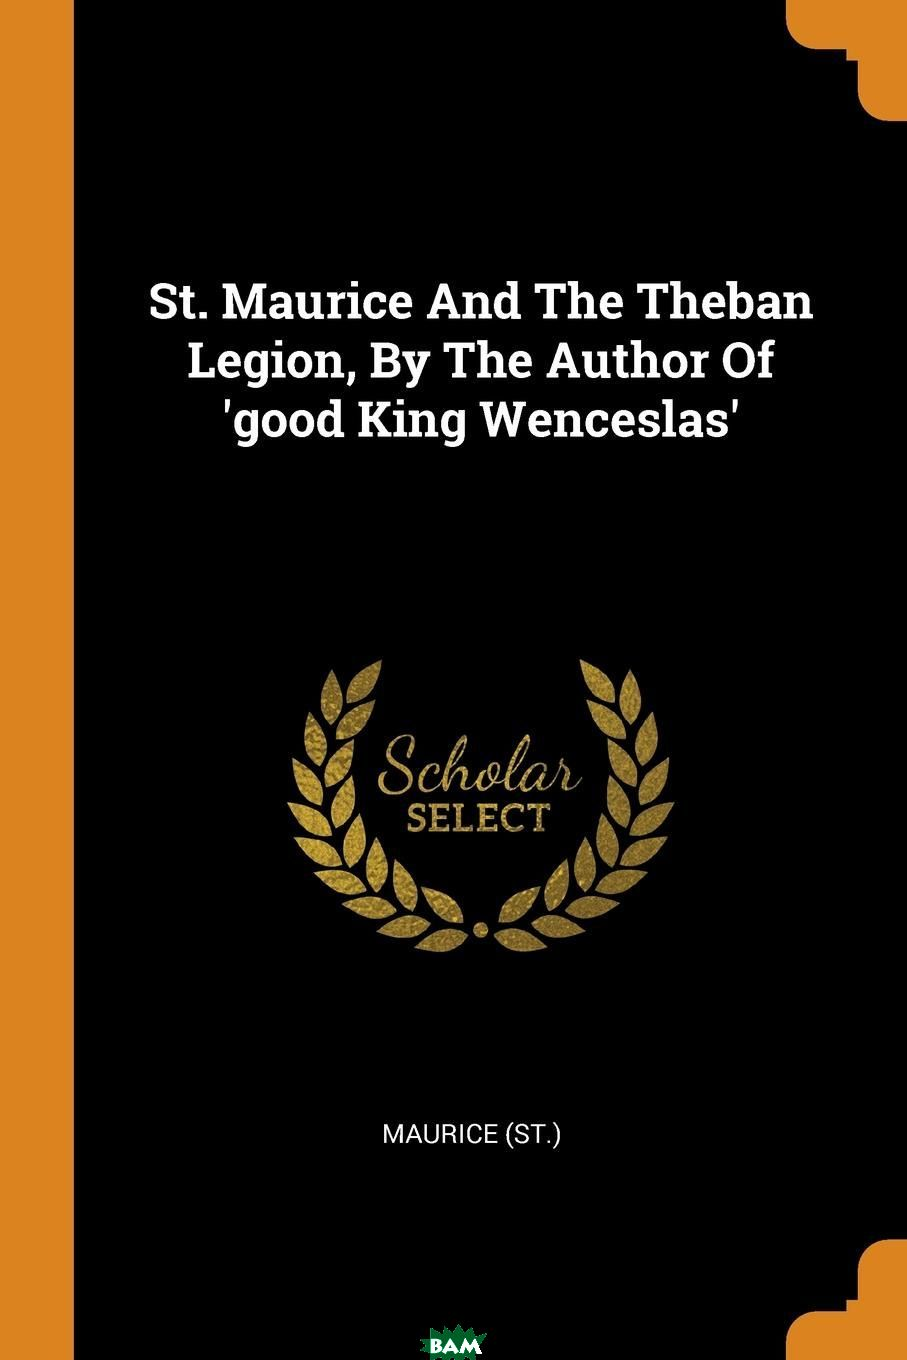 Купить St. Maurice And The Theban Legion, By The Author Of .good King Wenceslas., Maurice (st.), 9780353510982